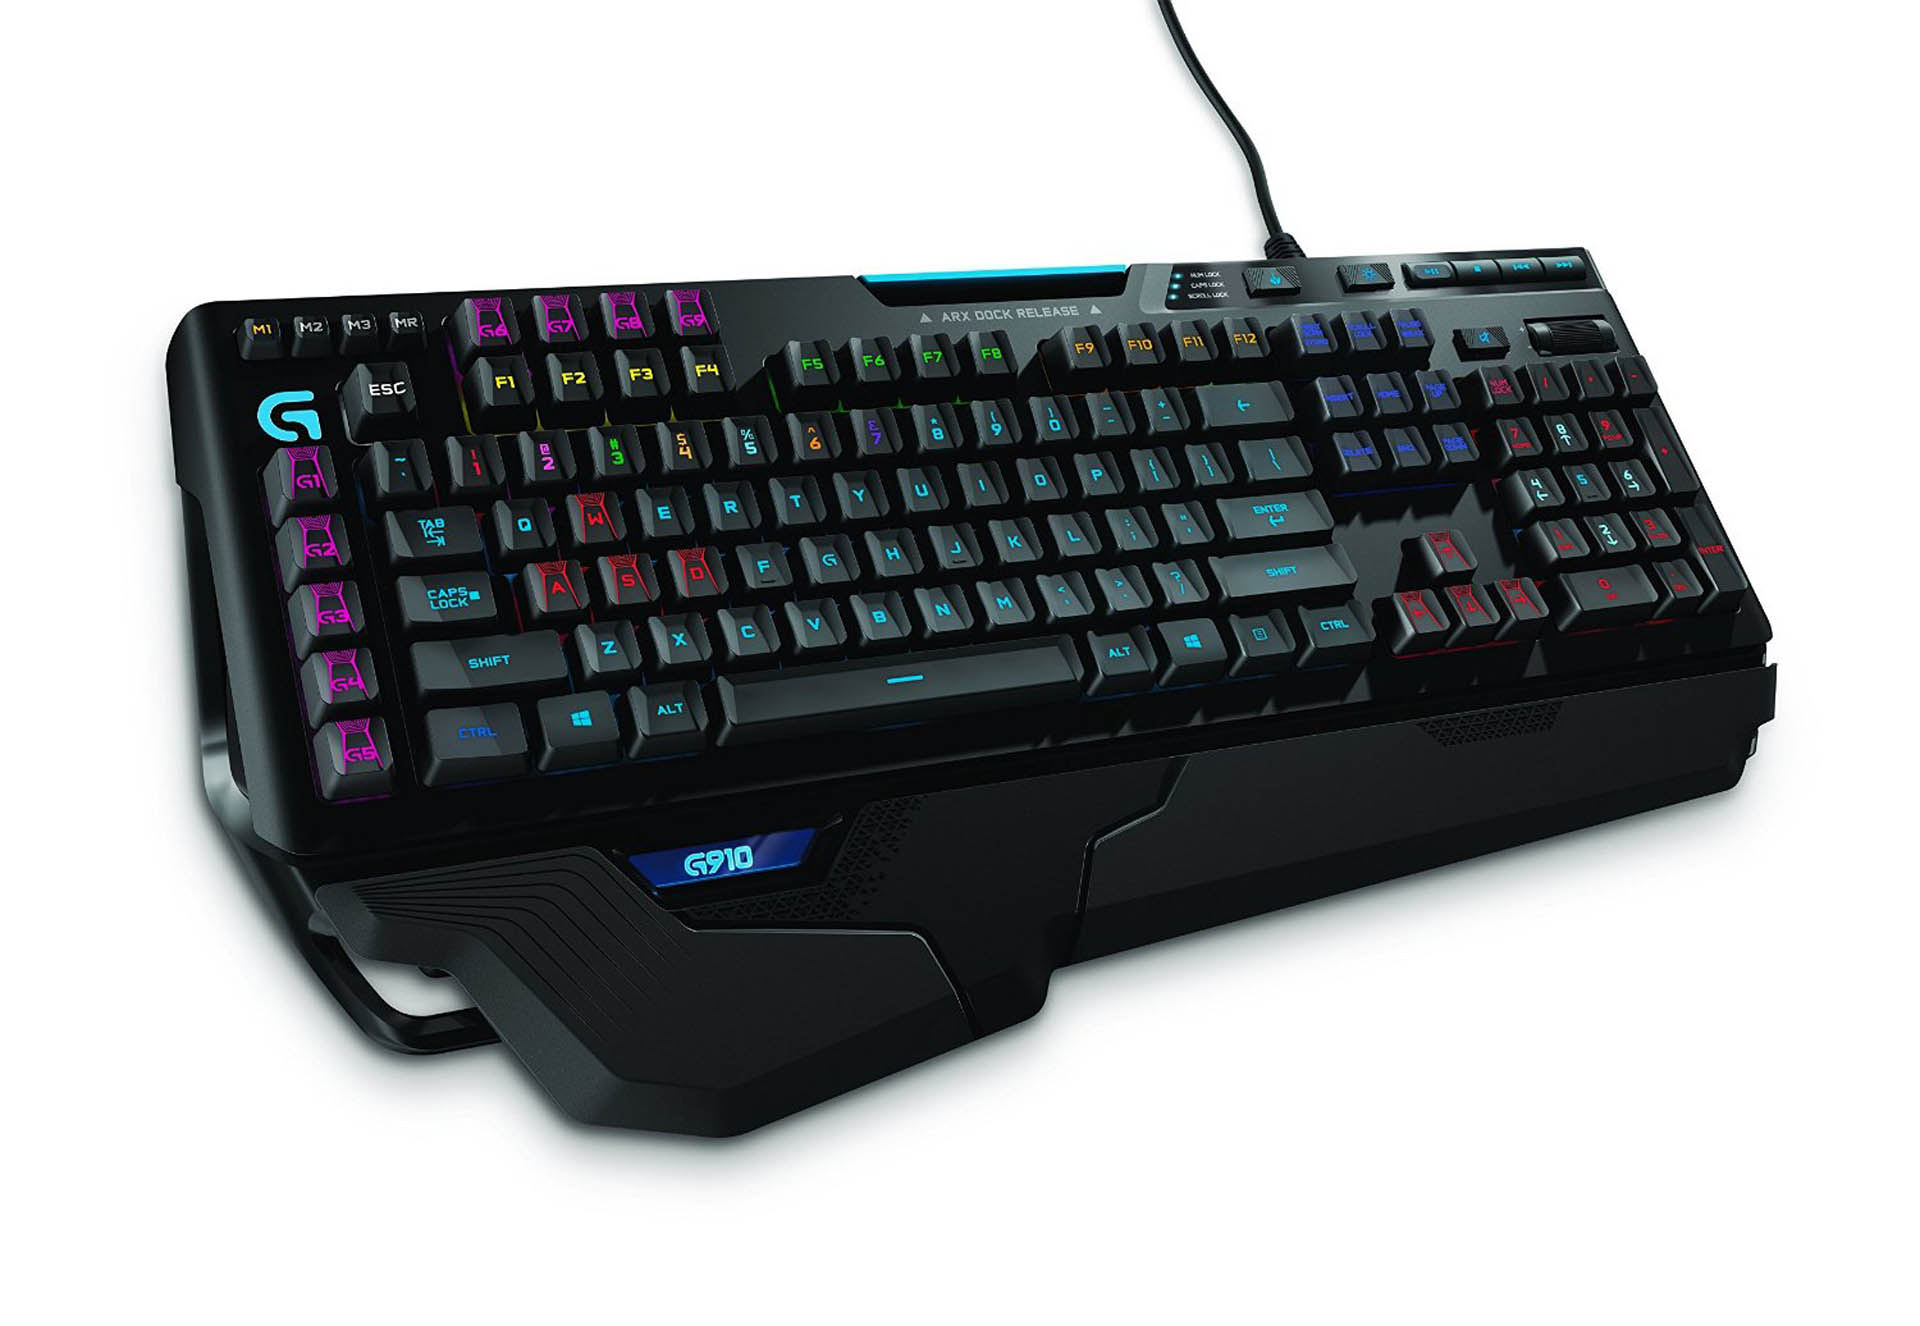 Logitech Orion Spectrum G910 Mechanical Gaming Keyboard Review – STG